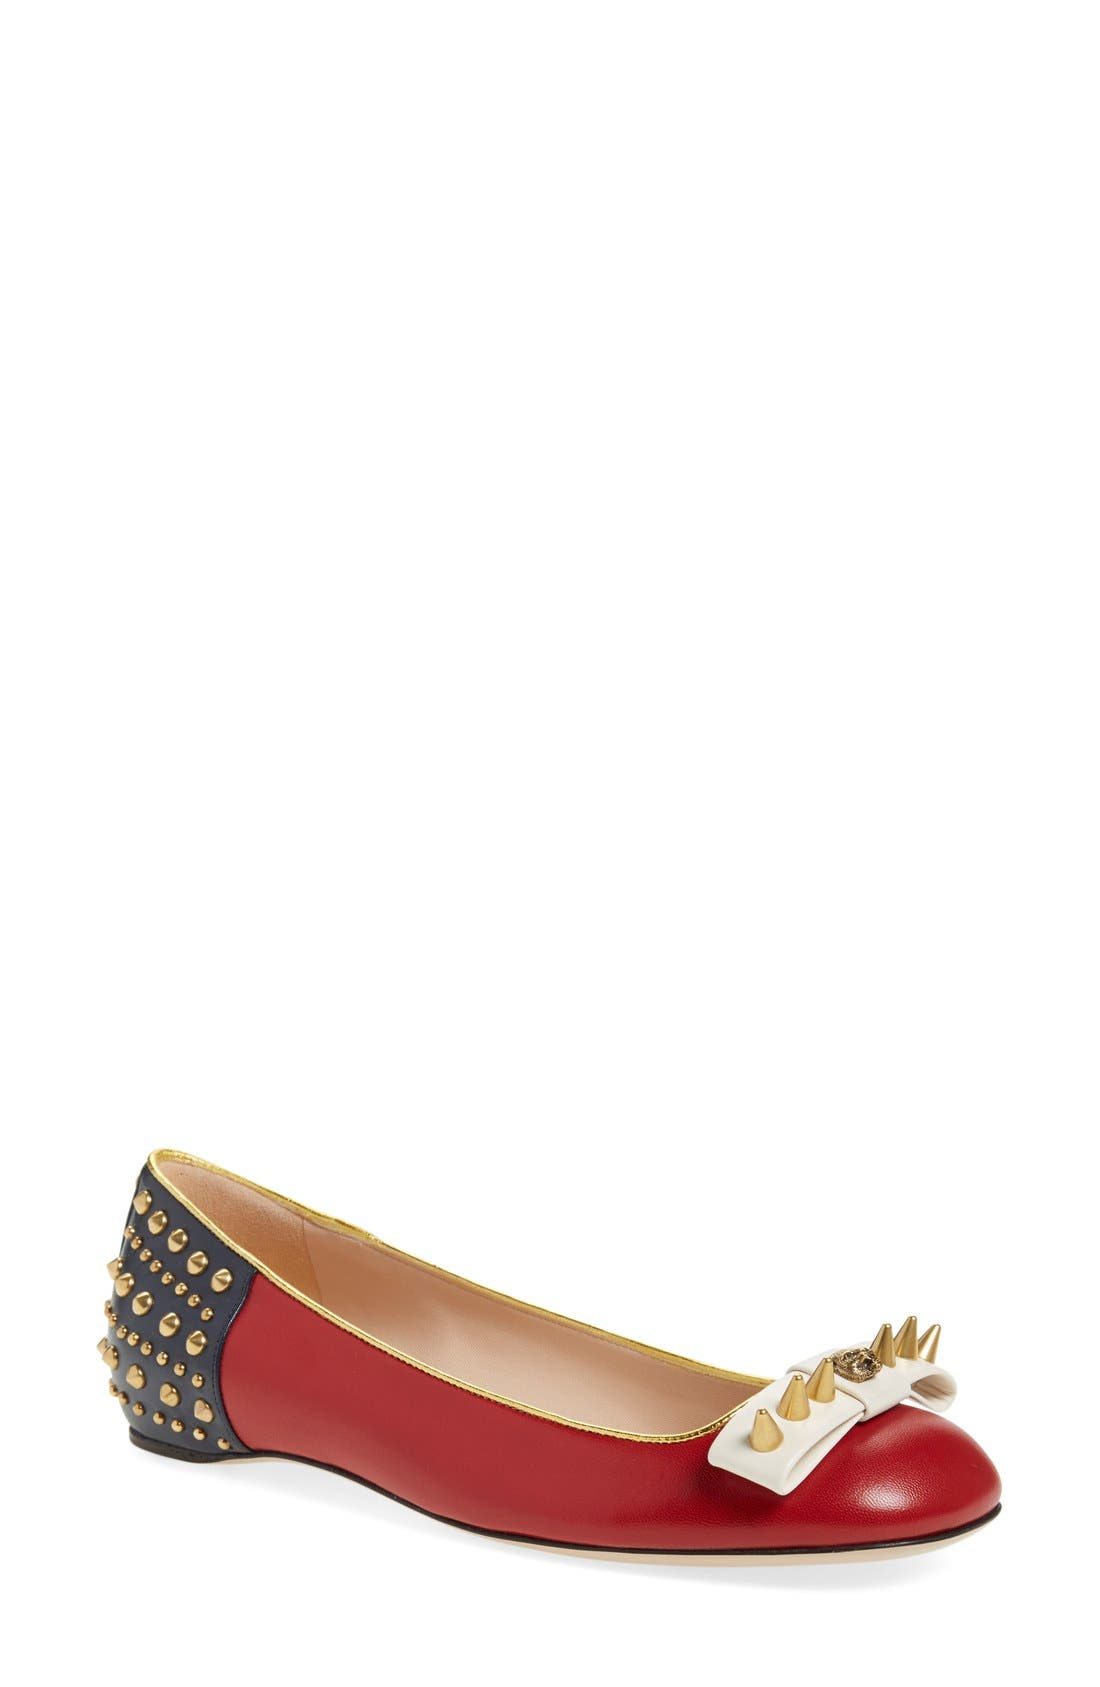 'Lexi' Studded Square Toe Flat,                         Main,                         color, 600